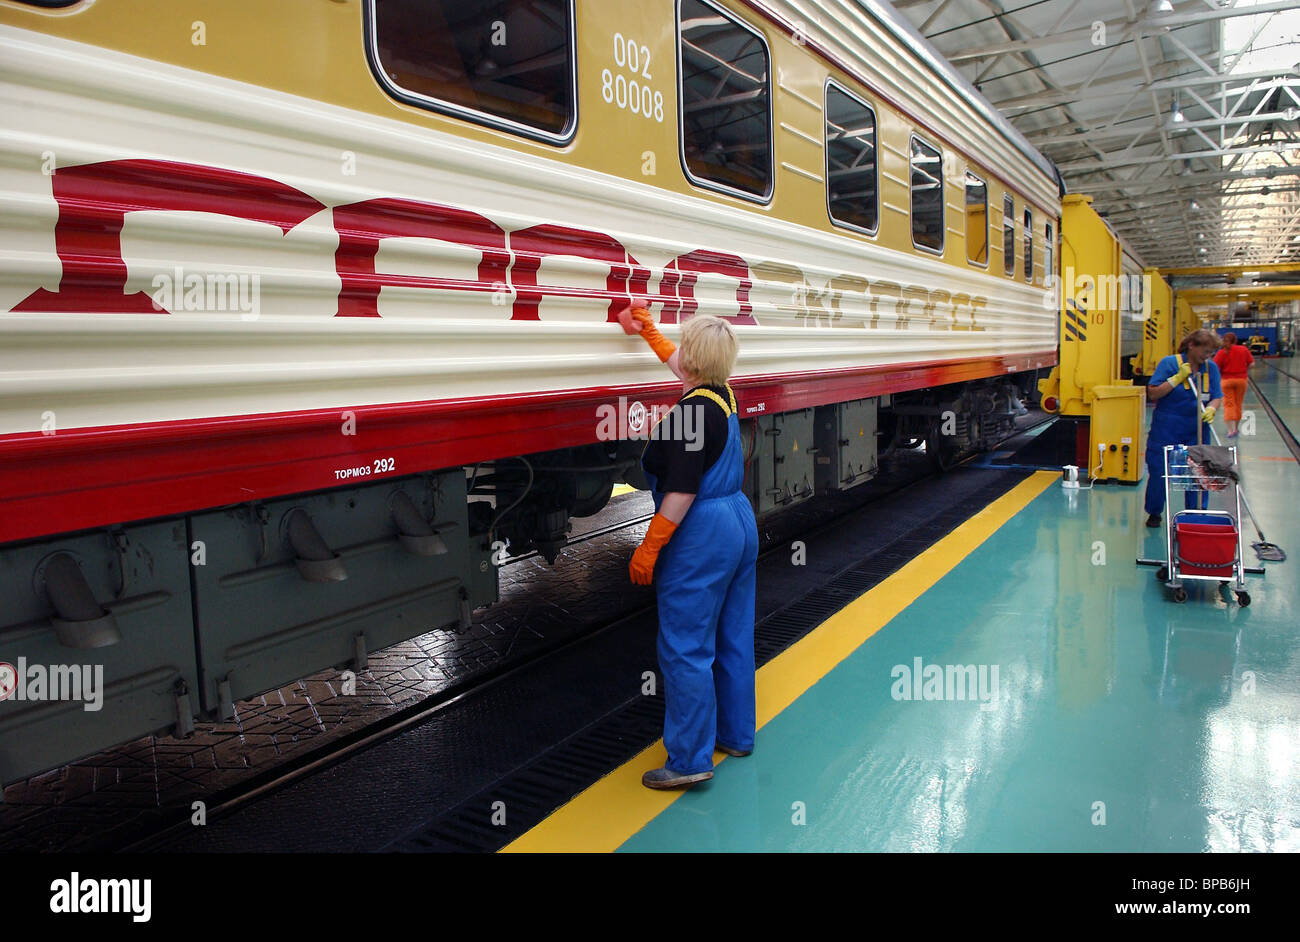 Grand, the first private train-hotel, departs for St Petersburg from Leningradsky railway station - Stock Image